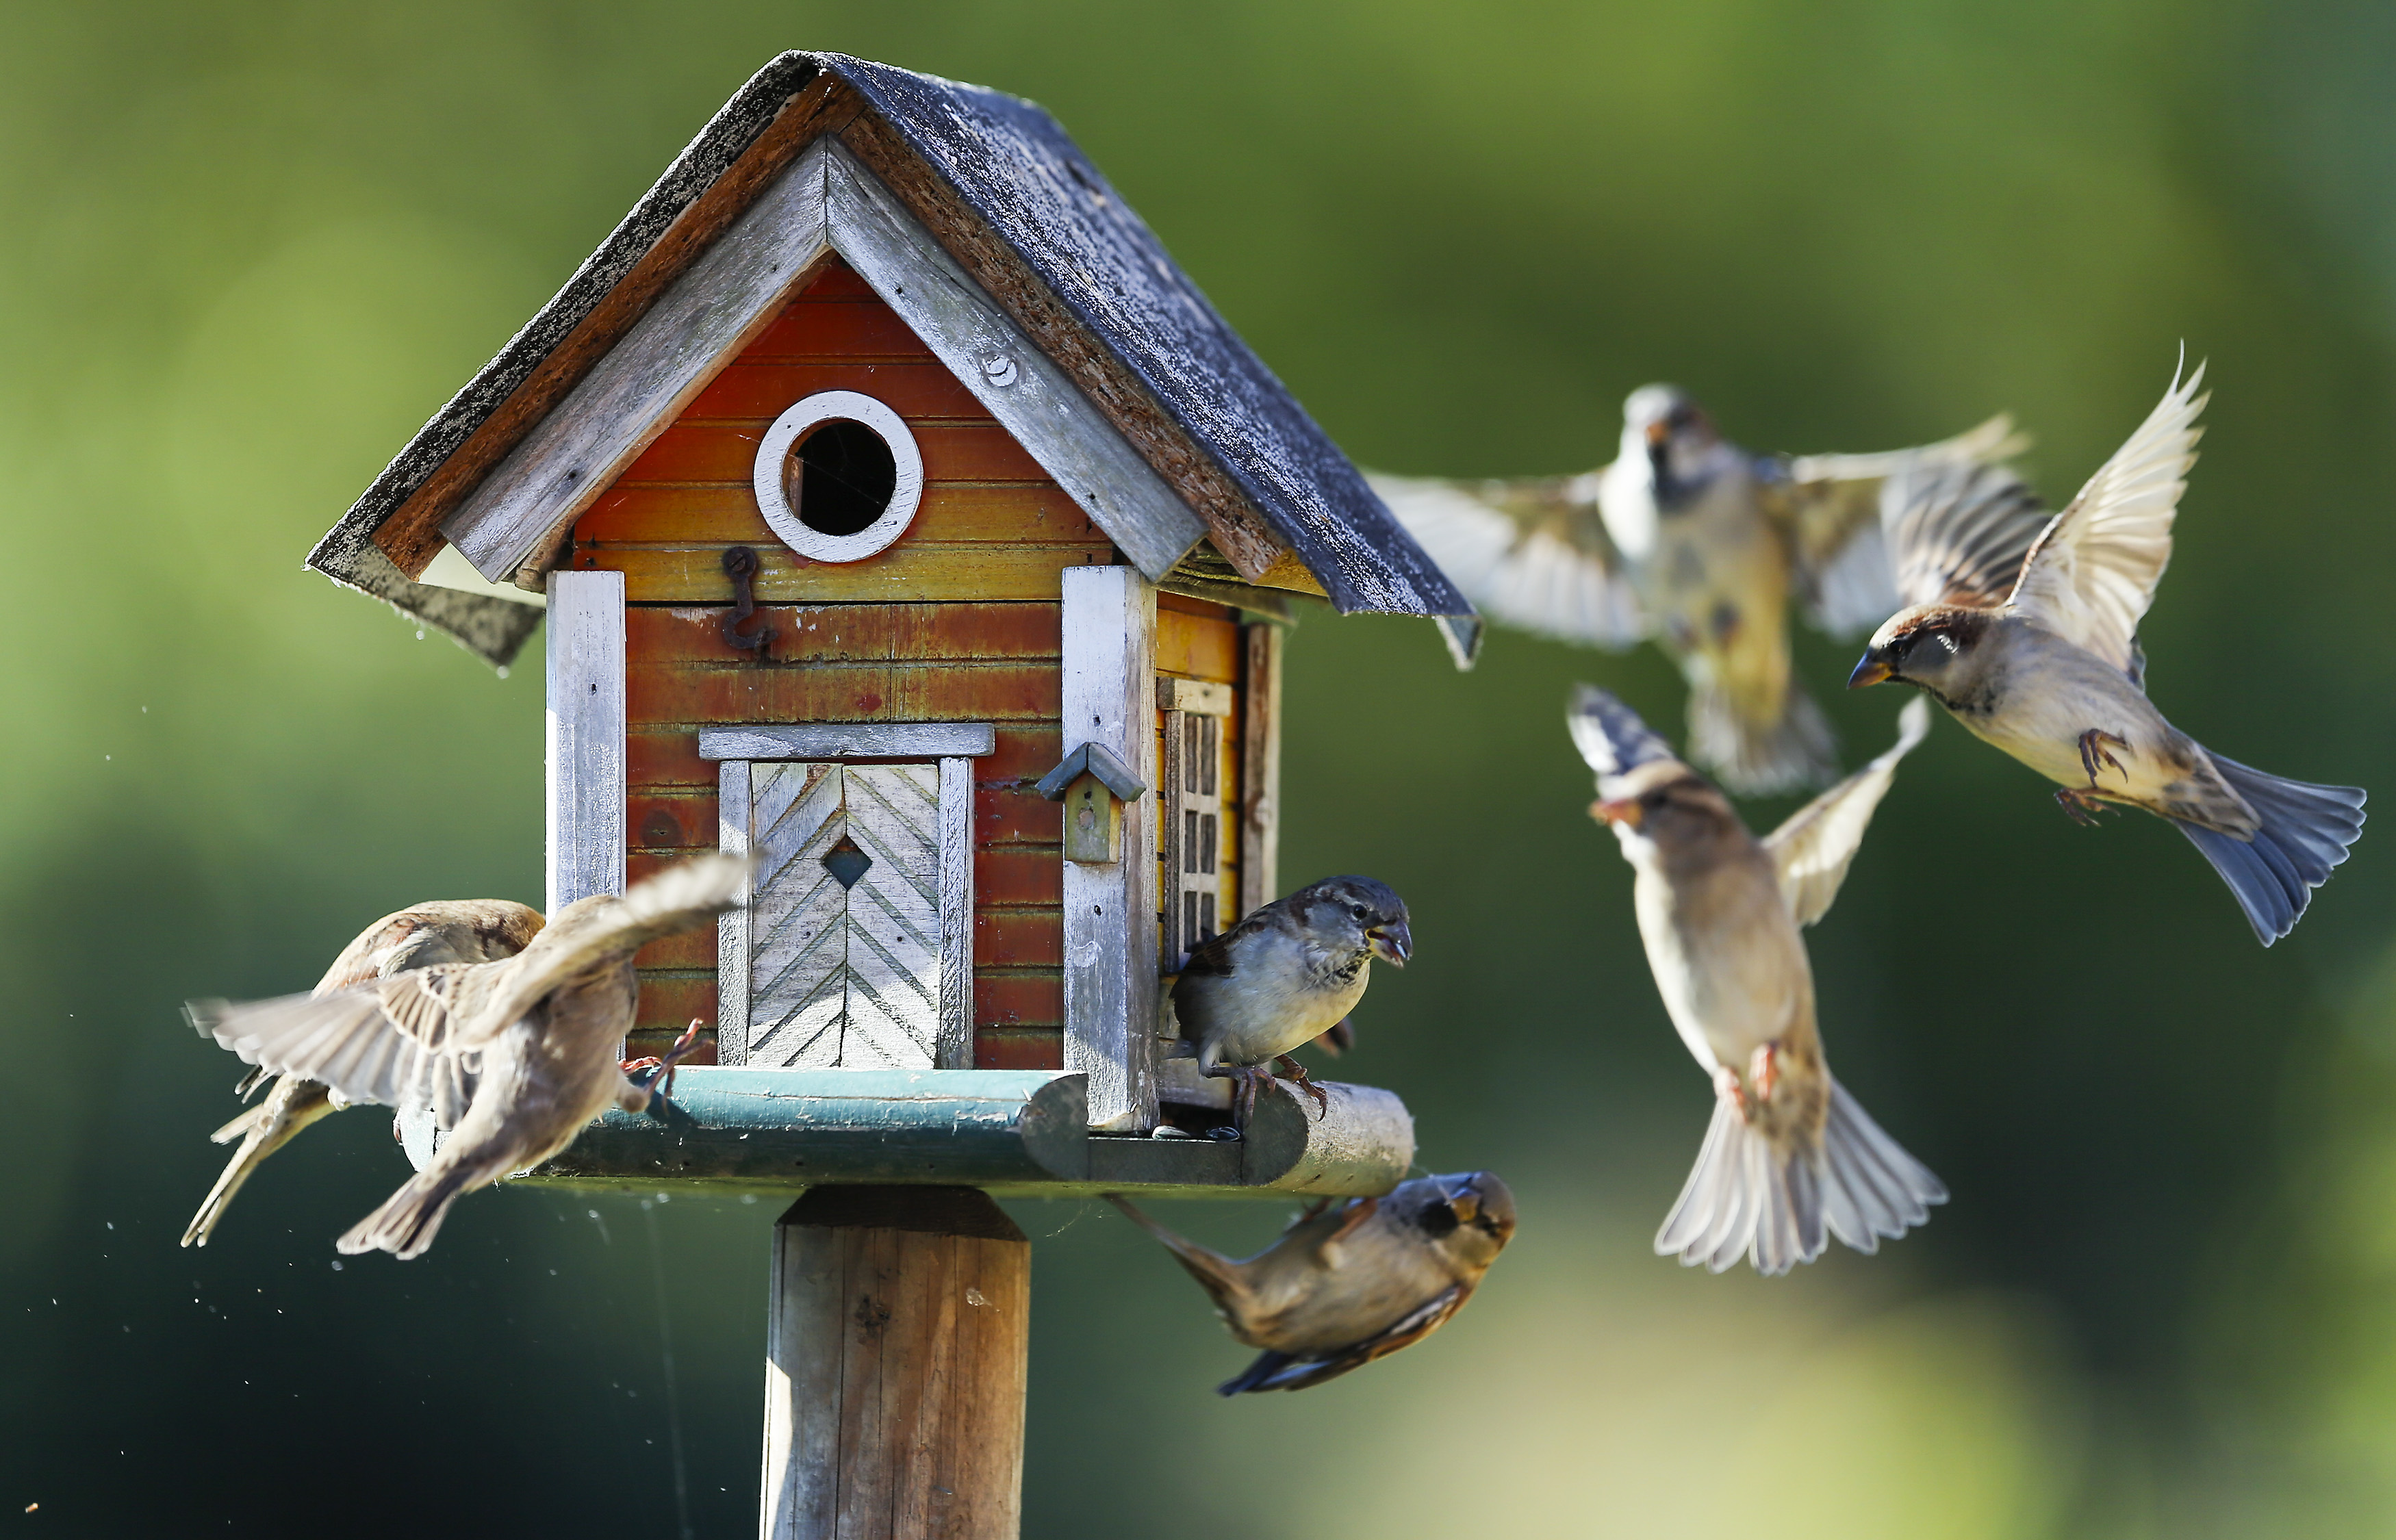 Sparrows fly around a bird feeder in Putgarten, Germany, September 29, 2015.